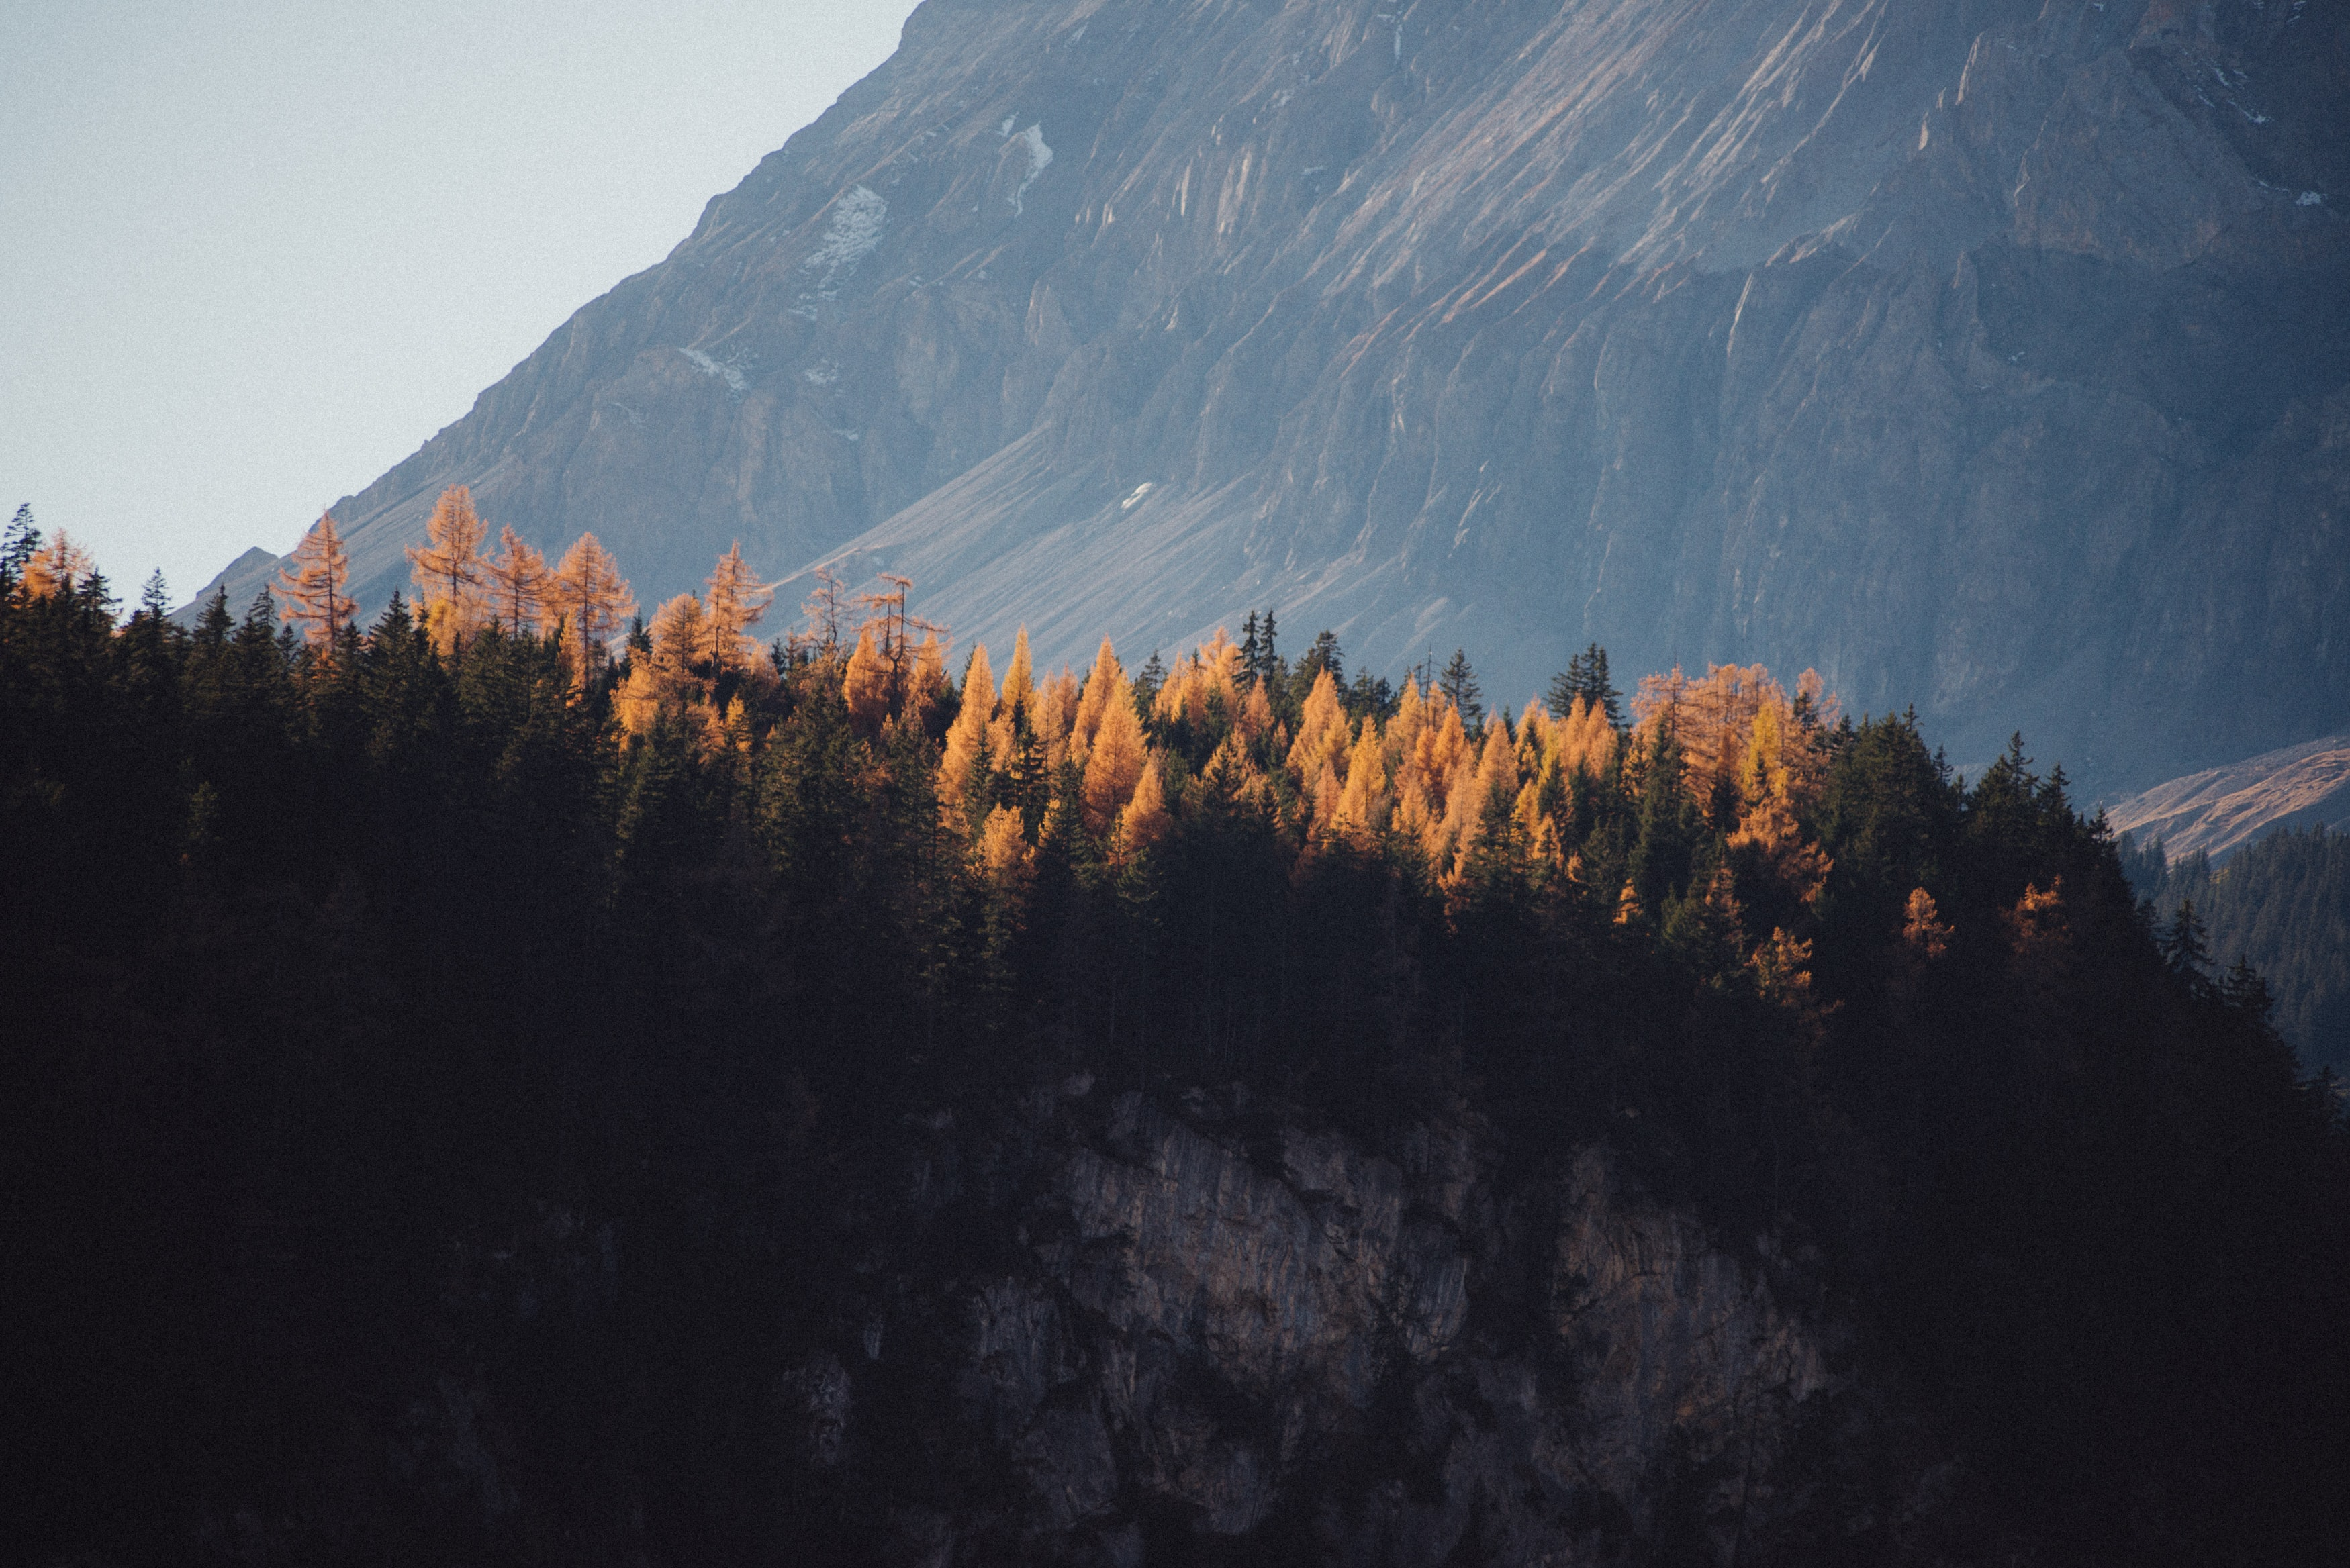 mountain and pine trees landscape